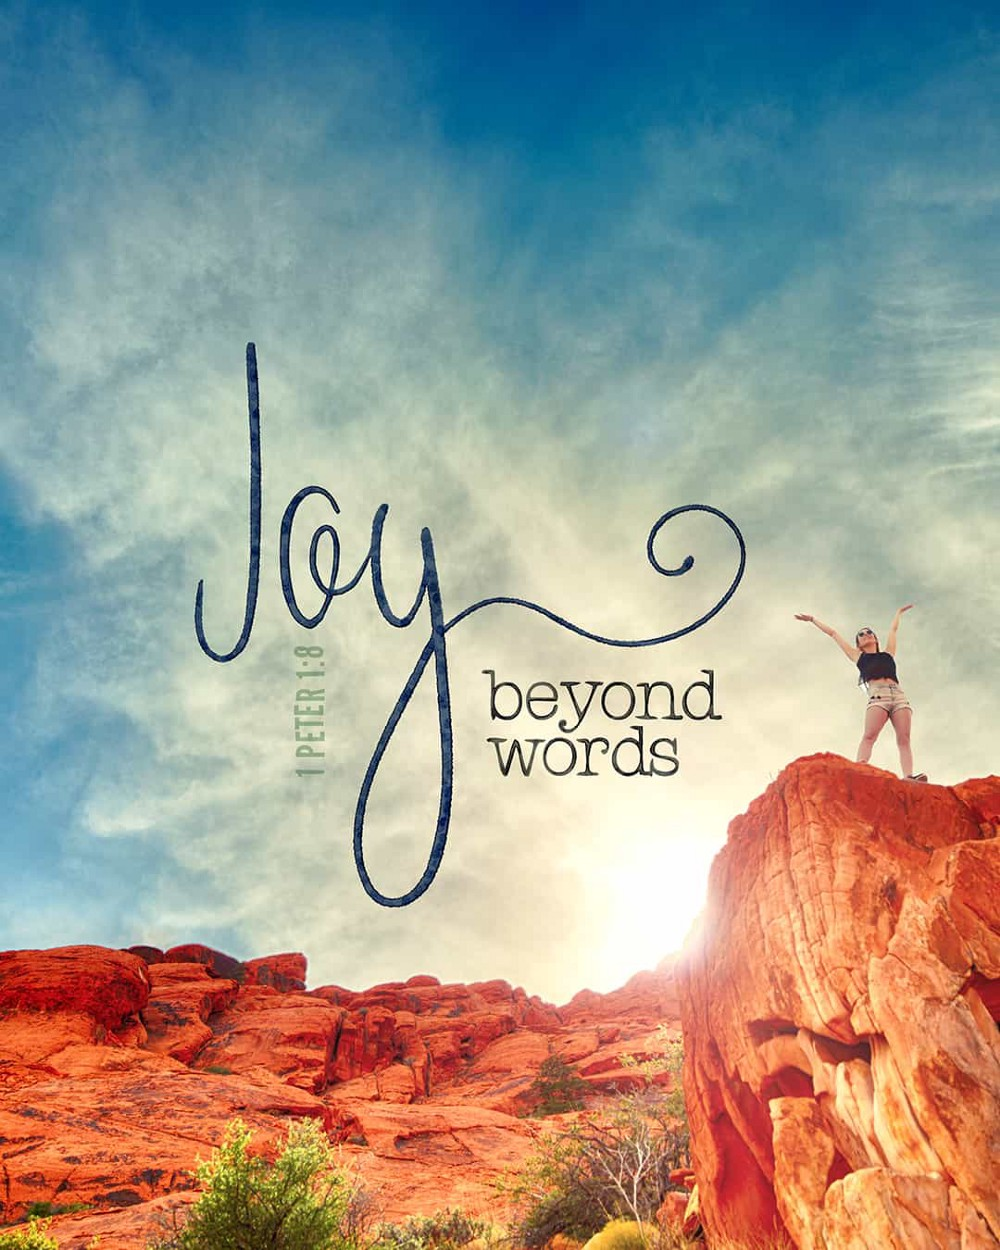 Joy beyond words—small voice today